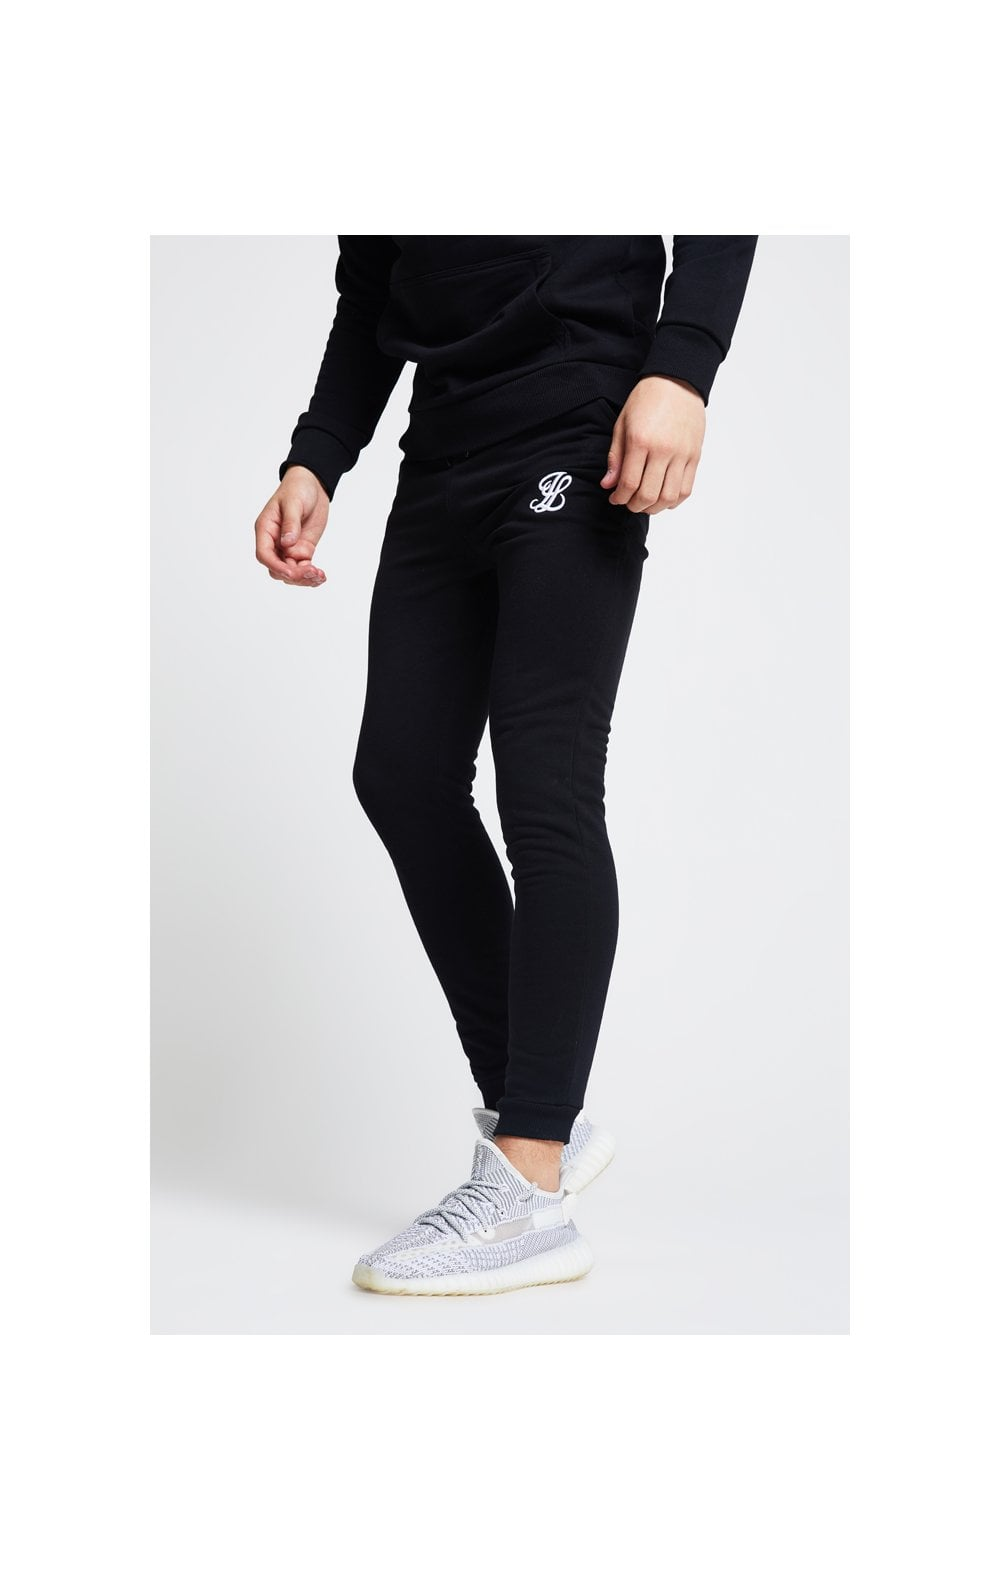 Illusive London Joggers – Black